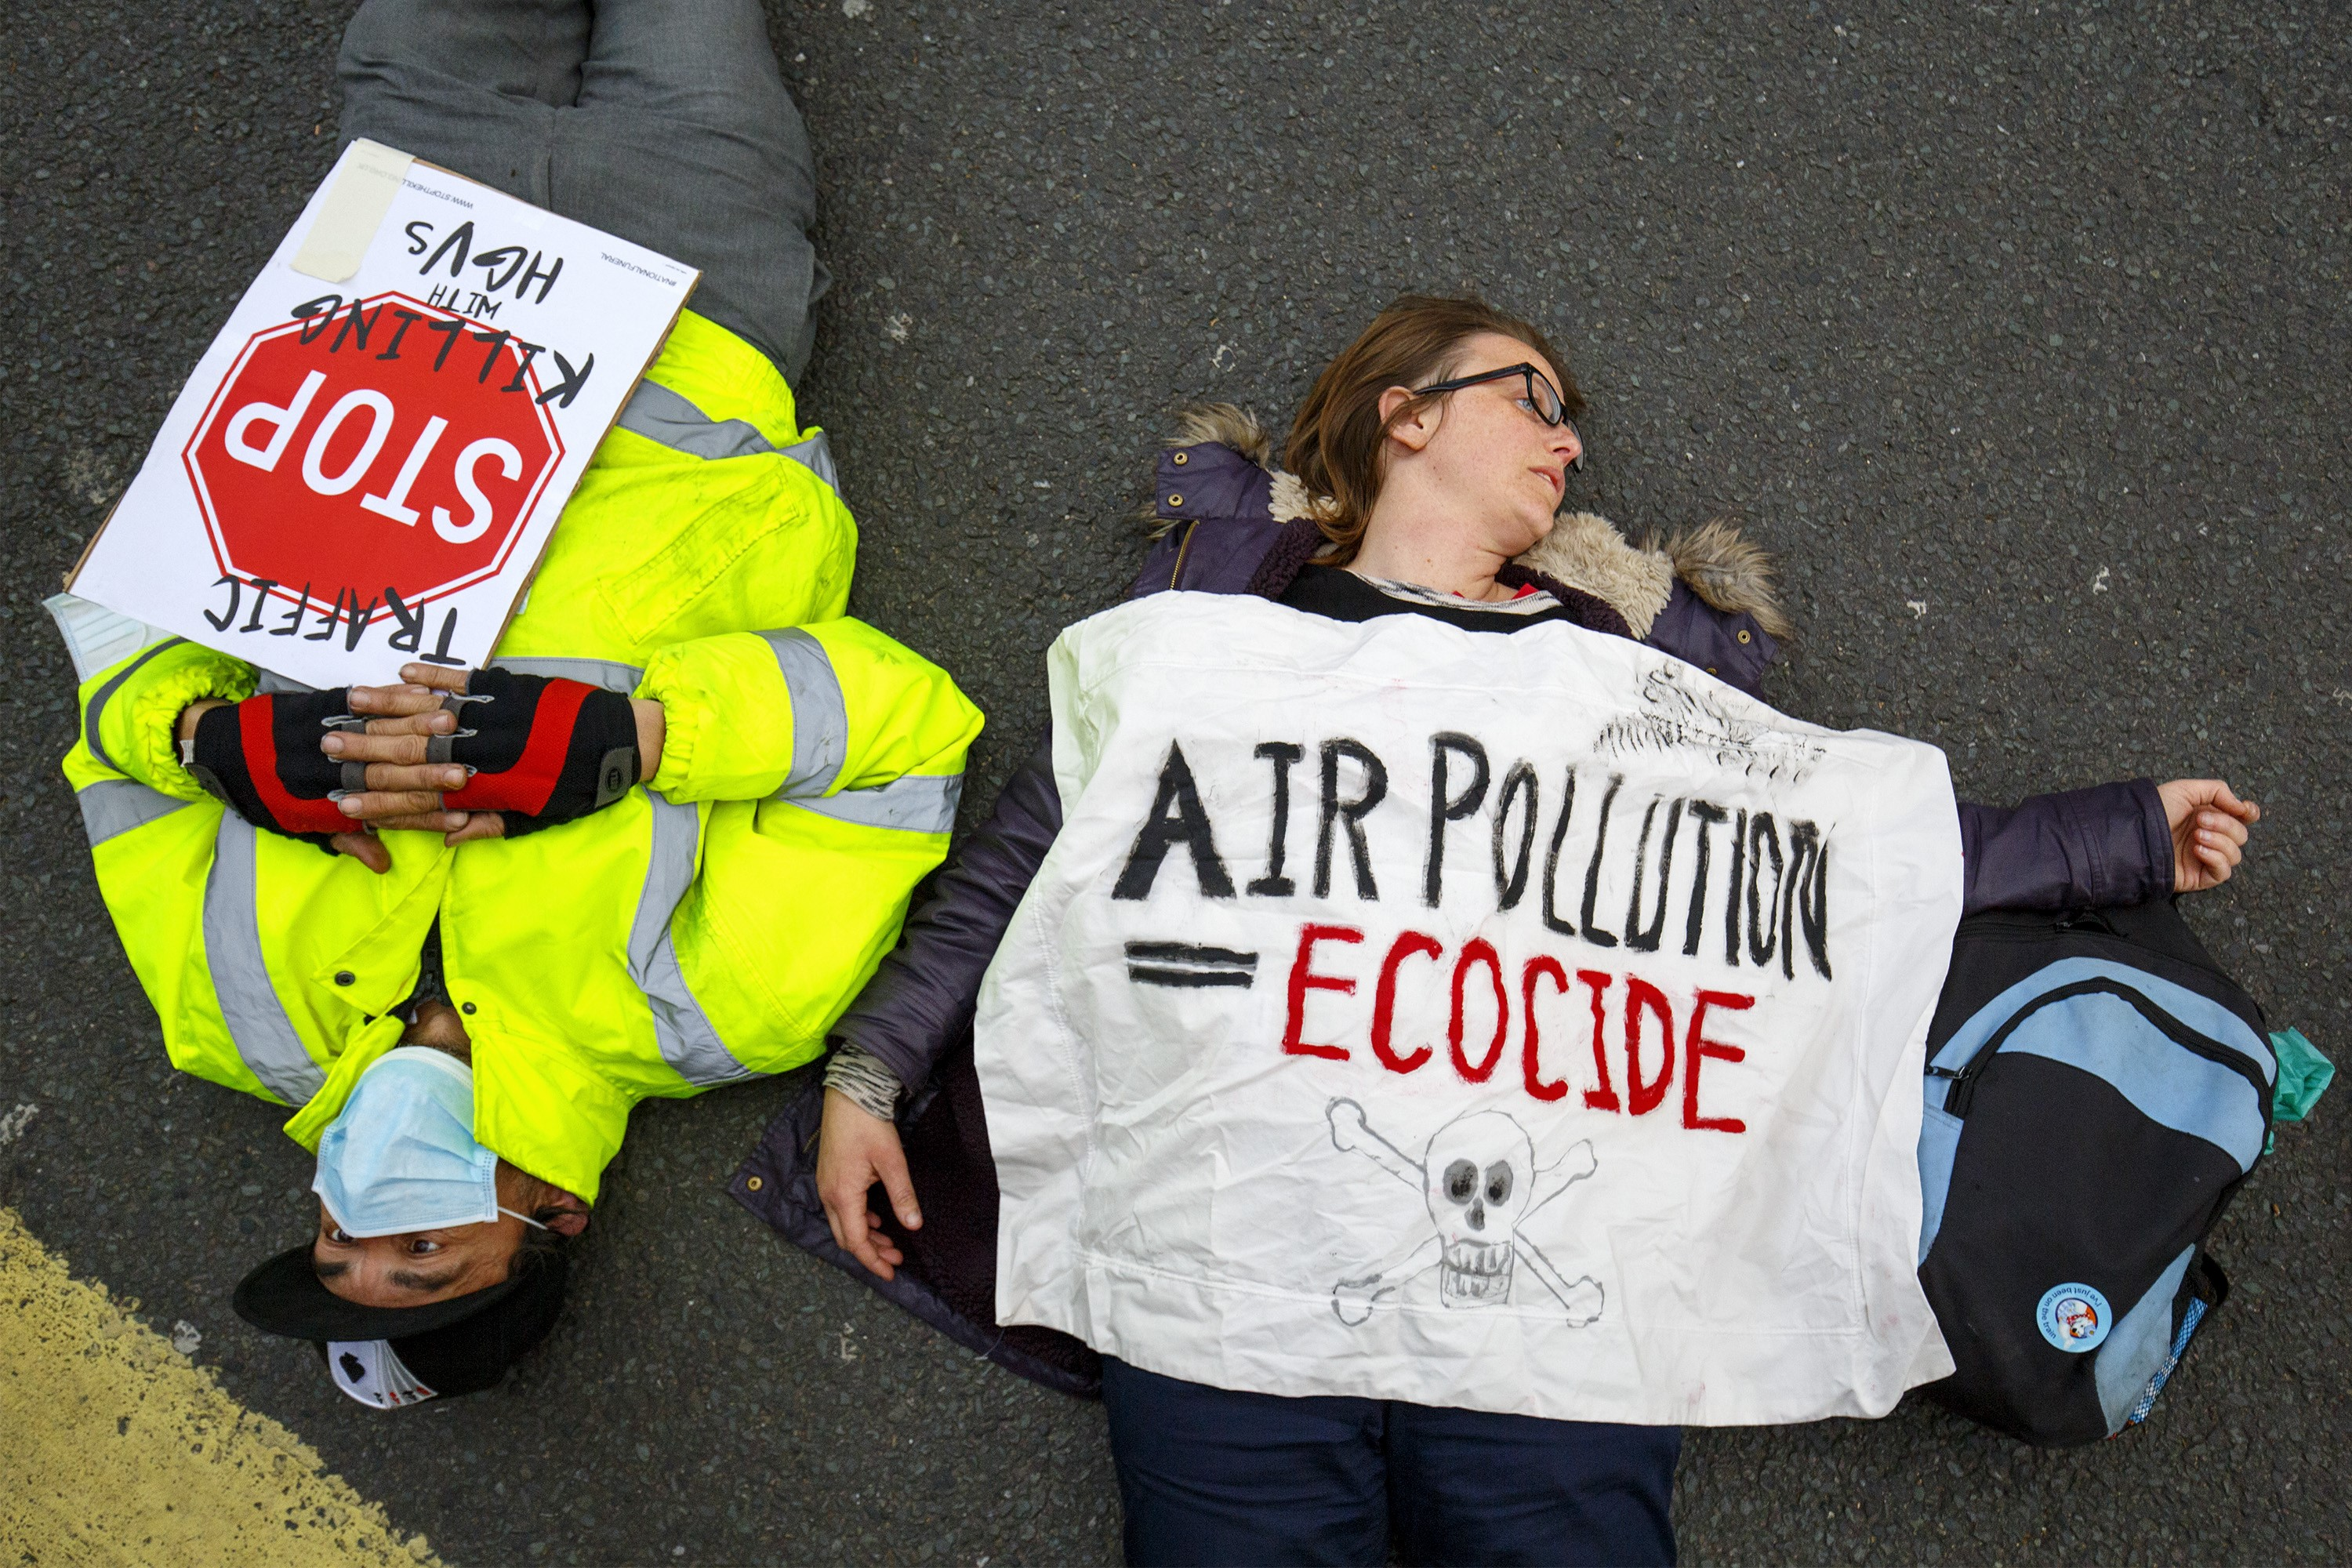 Protesters stage a die-in protest with gas masks and teddy bears at an antipollution rally outside the Department for Transport in London to highlight the dangers of polluted air poses to people and children's health on April 27, 2016